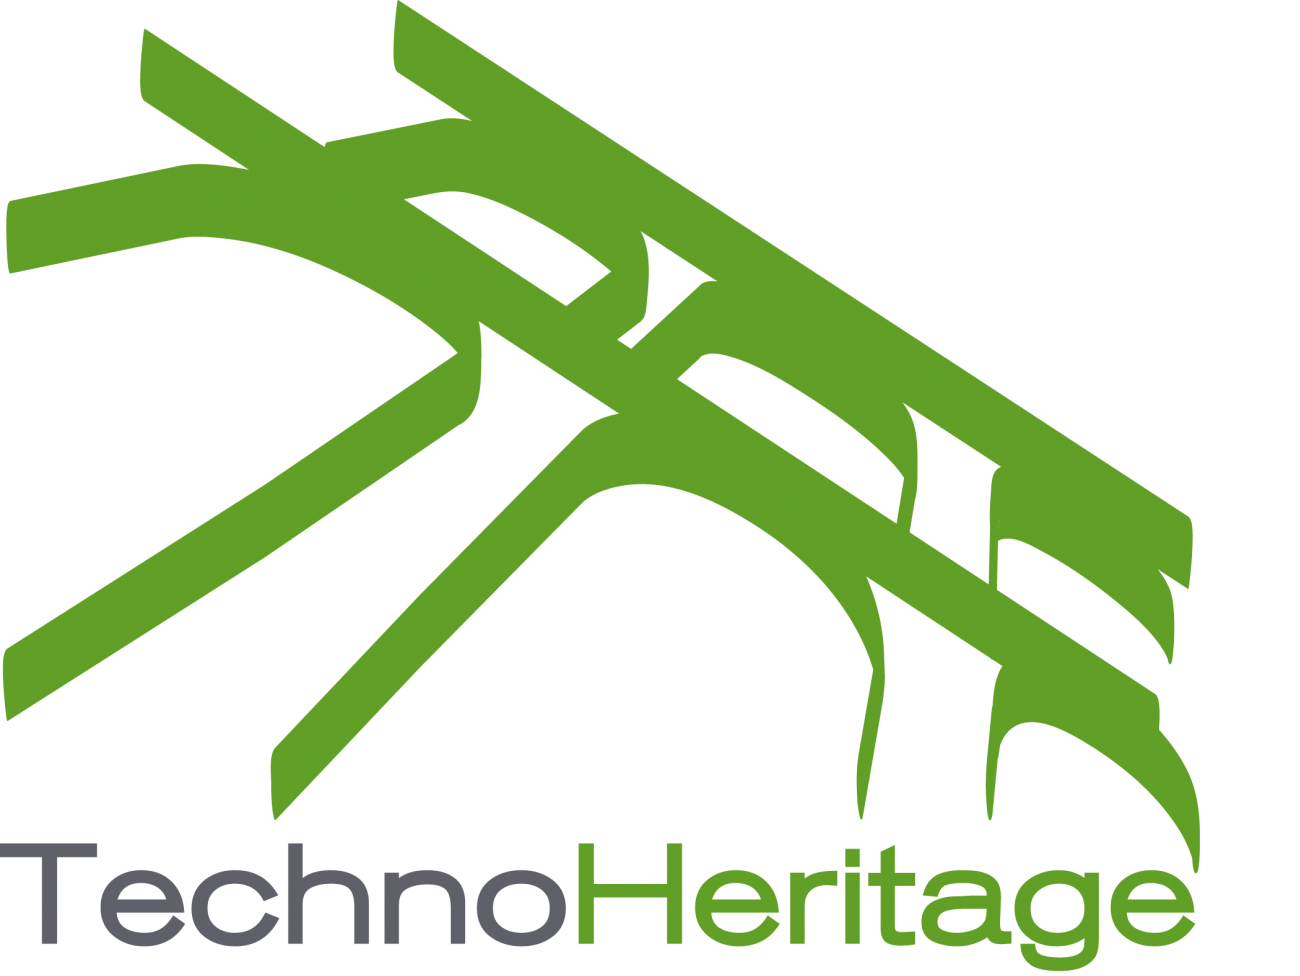 technoheritage